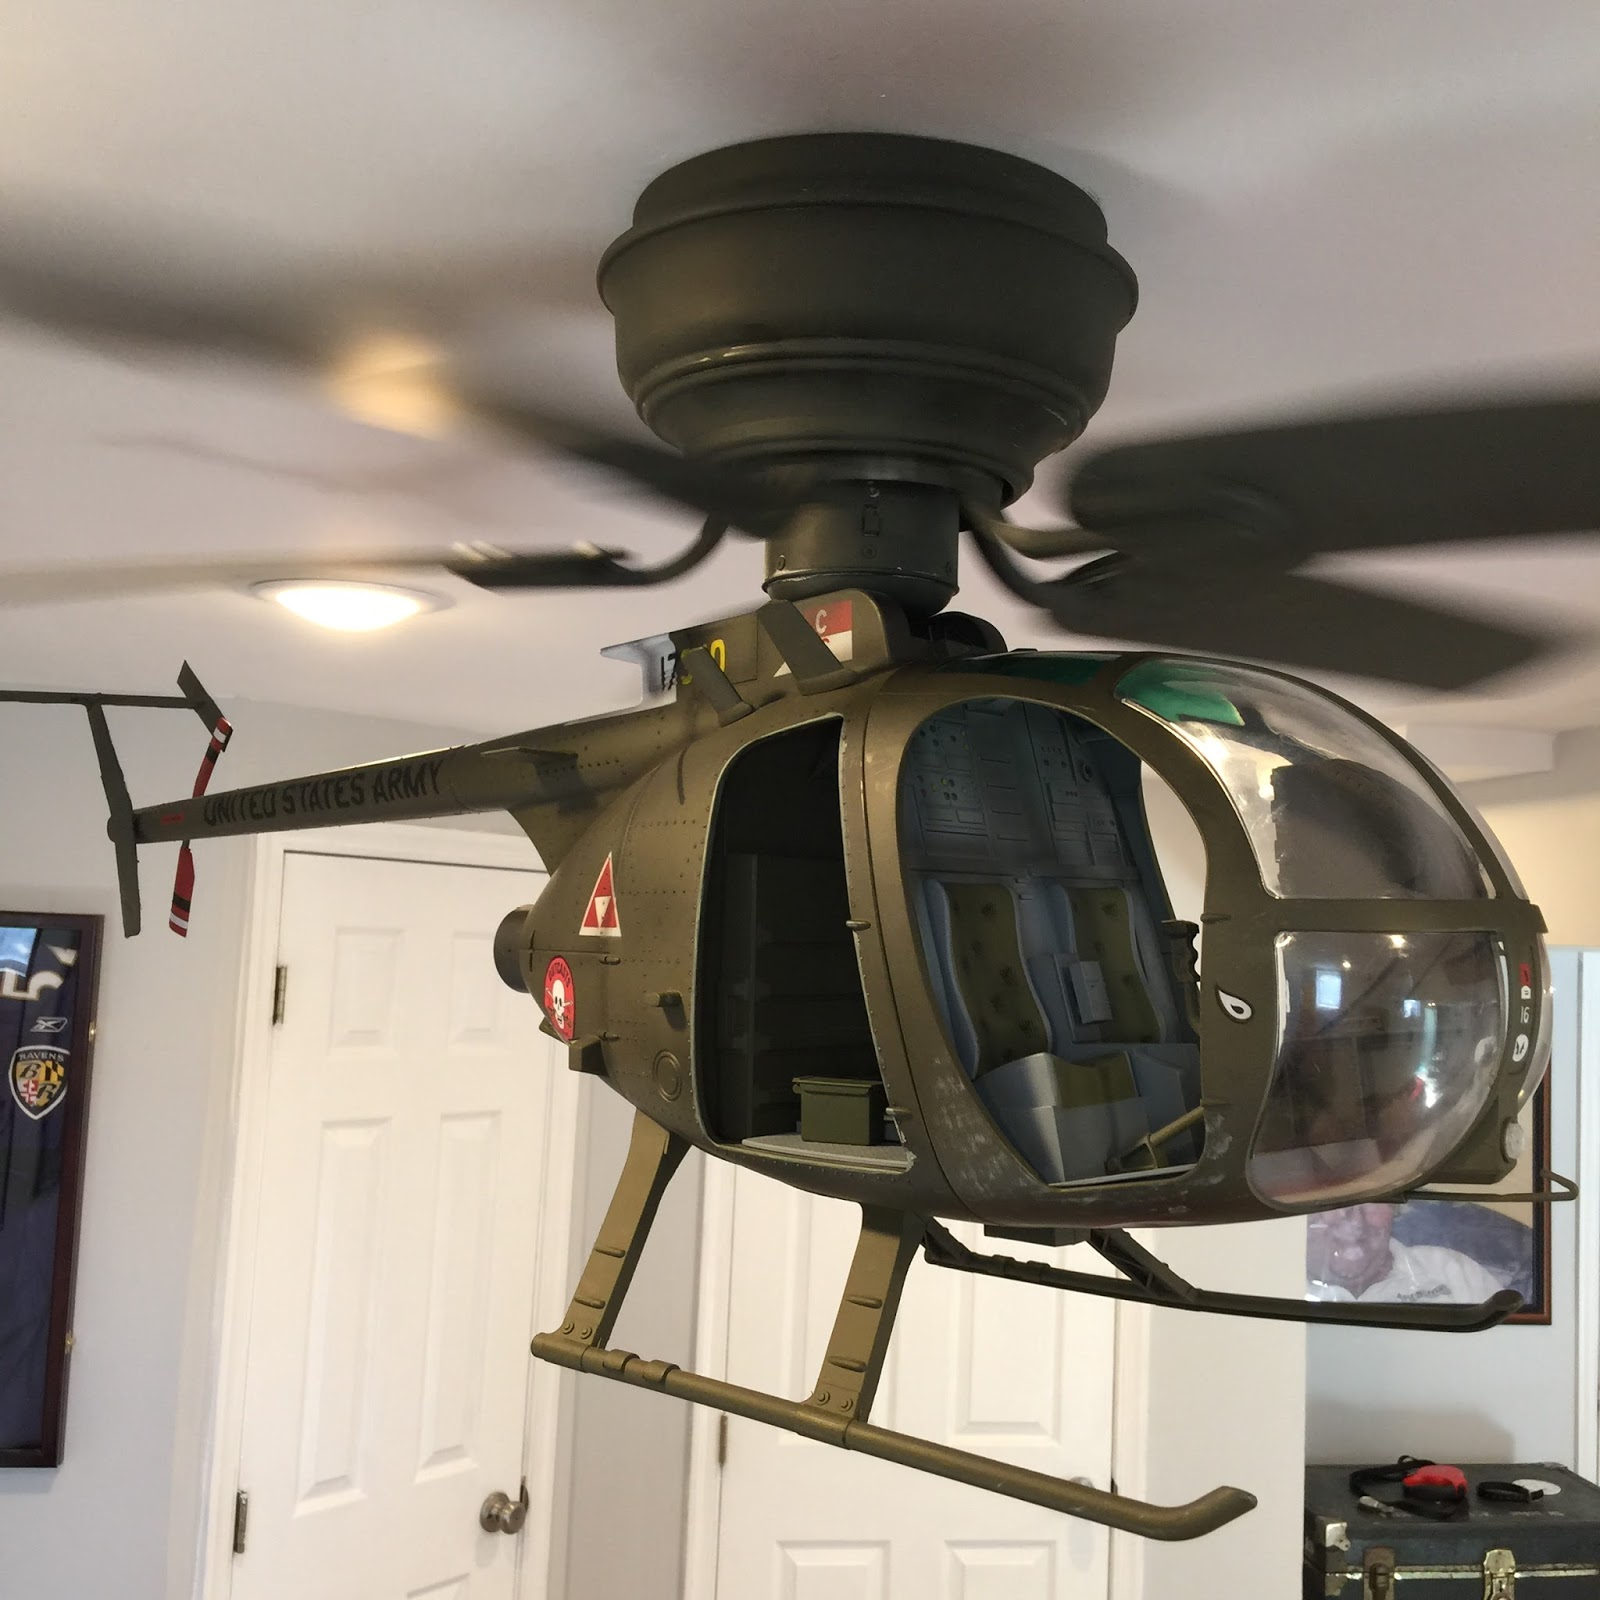 Captivating OH 6 Cayuse Helicopter Ceiling Fan